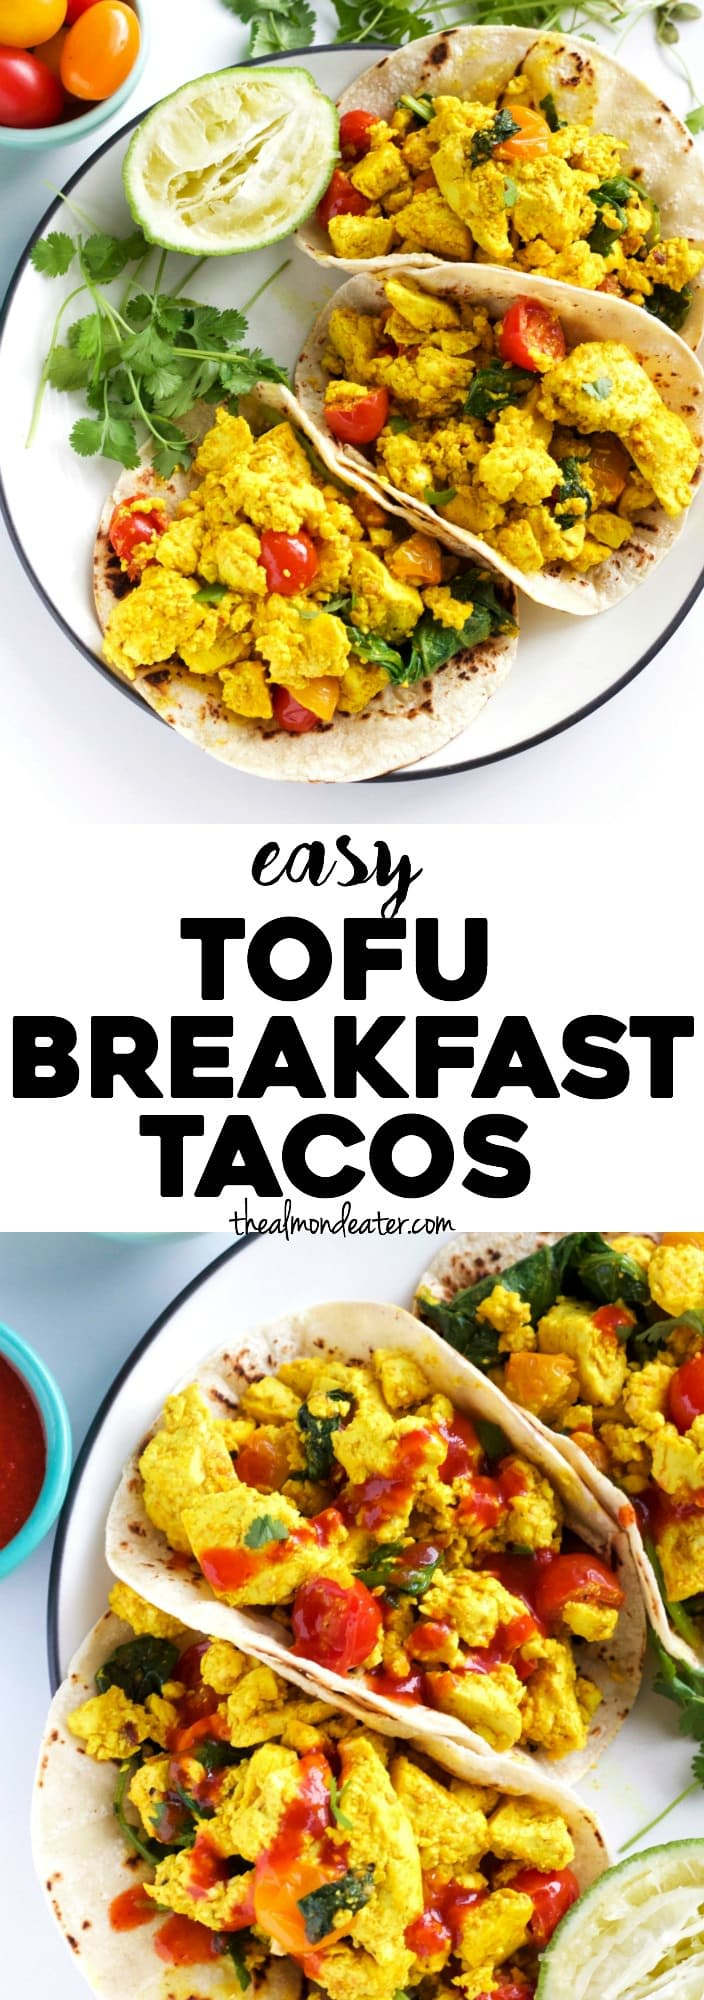 Healthy 8-ingredient TOFU breakfast tacos that are #vegan too! | thealmondeater.com